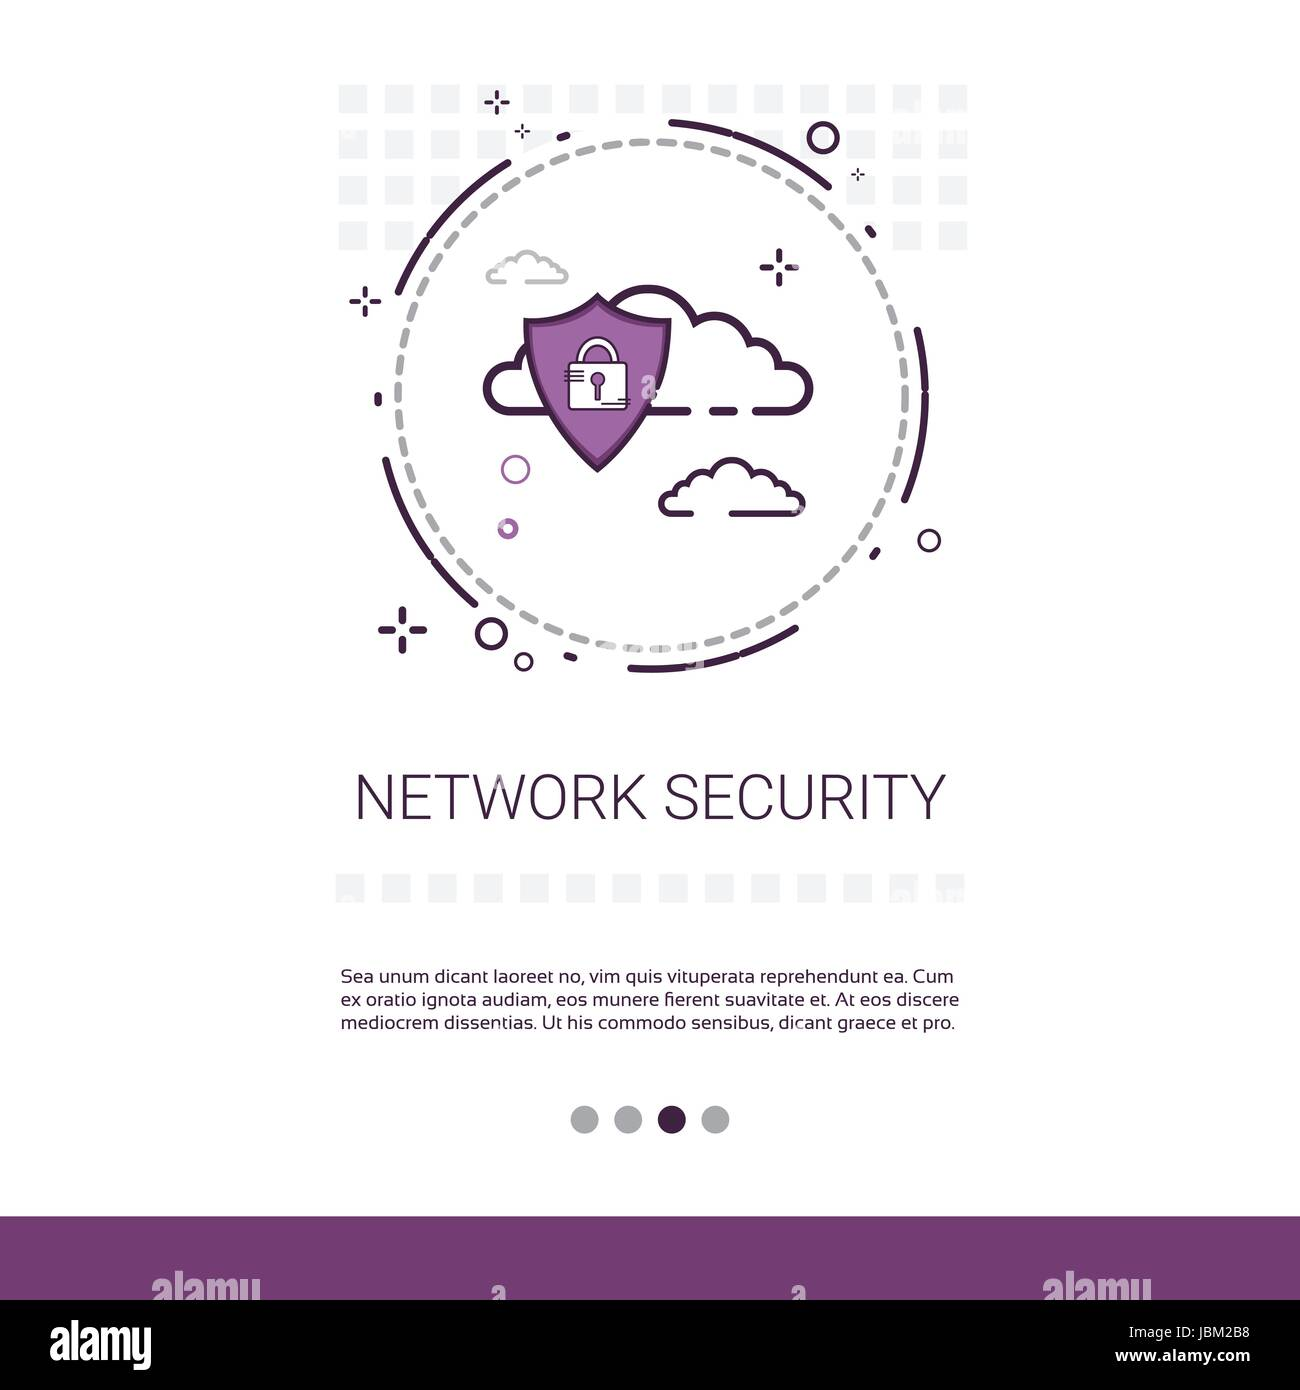 Data Protection Privacy Internet Information Network Security Web Banner With Copy Space - Stock Image